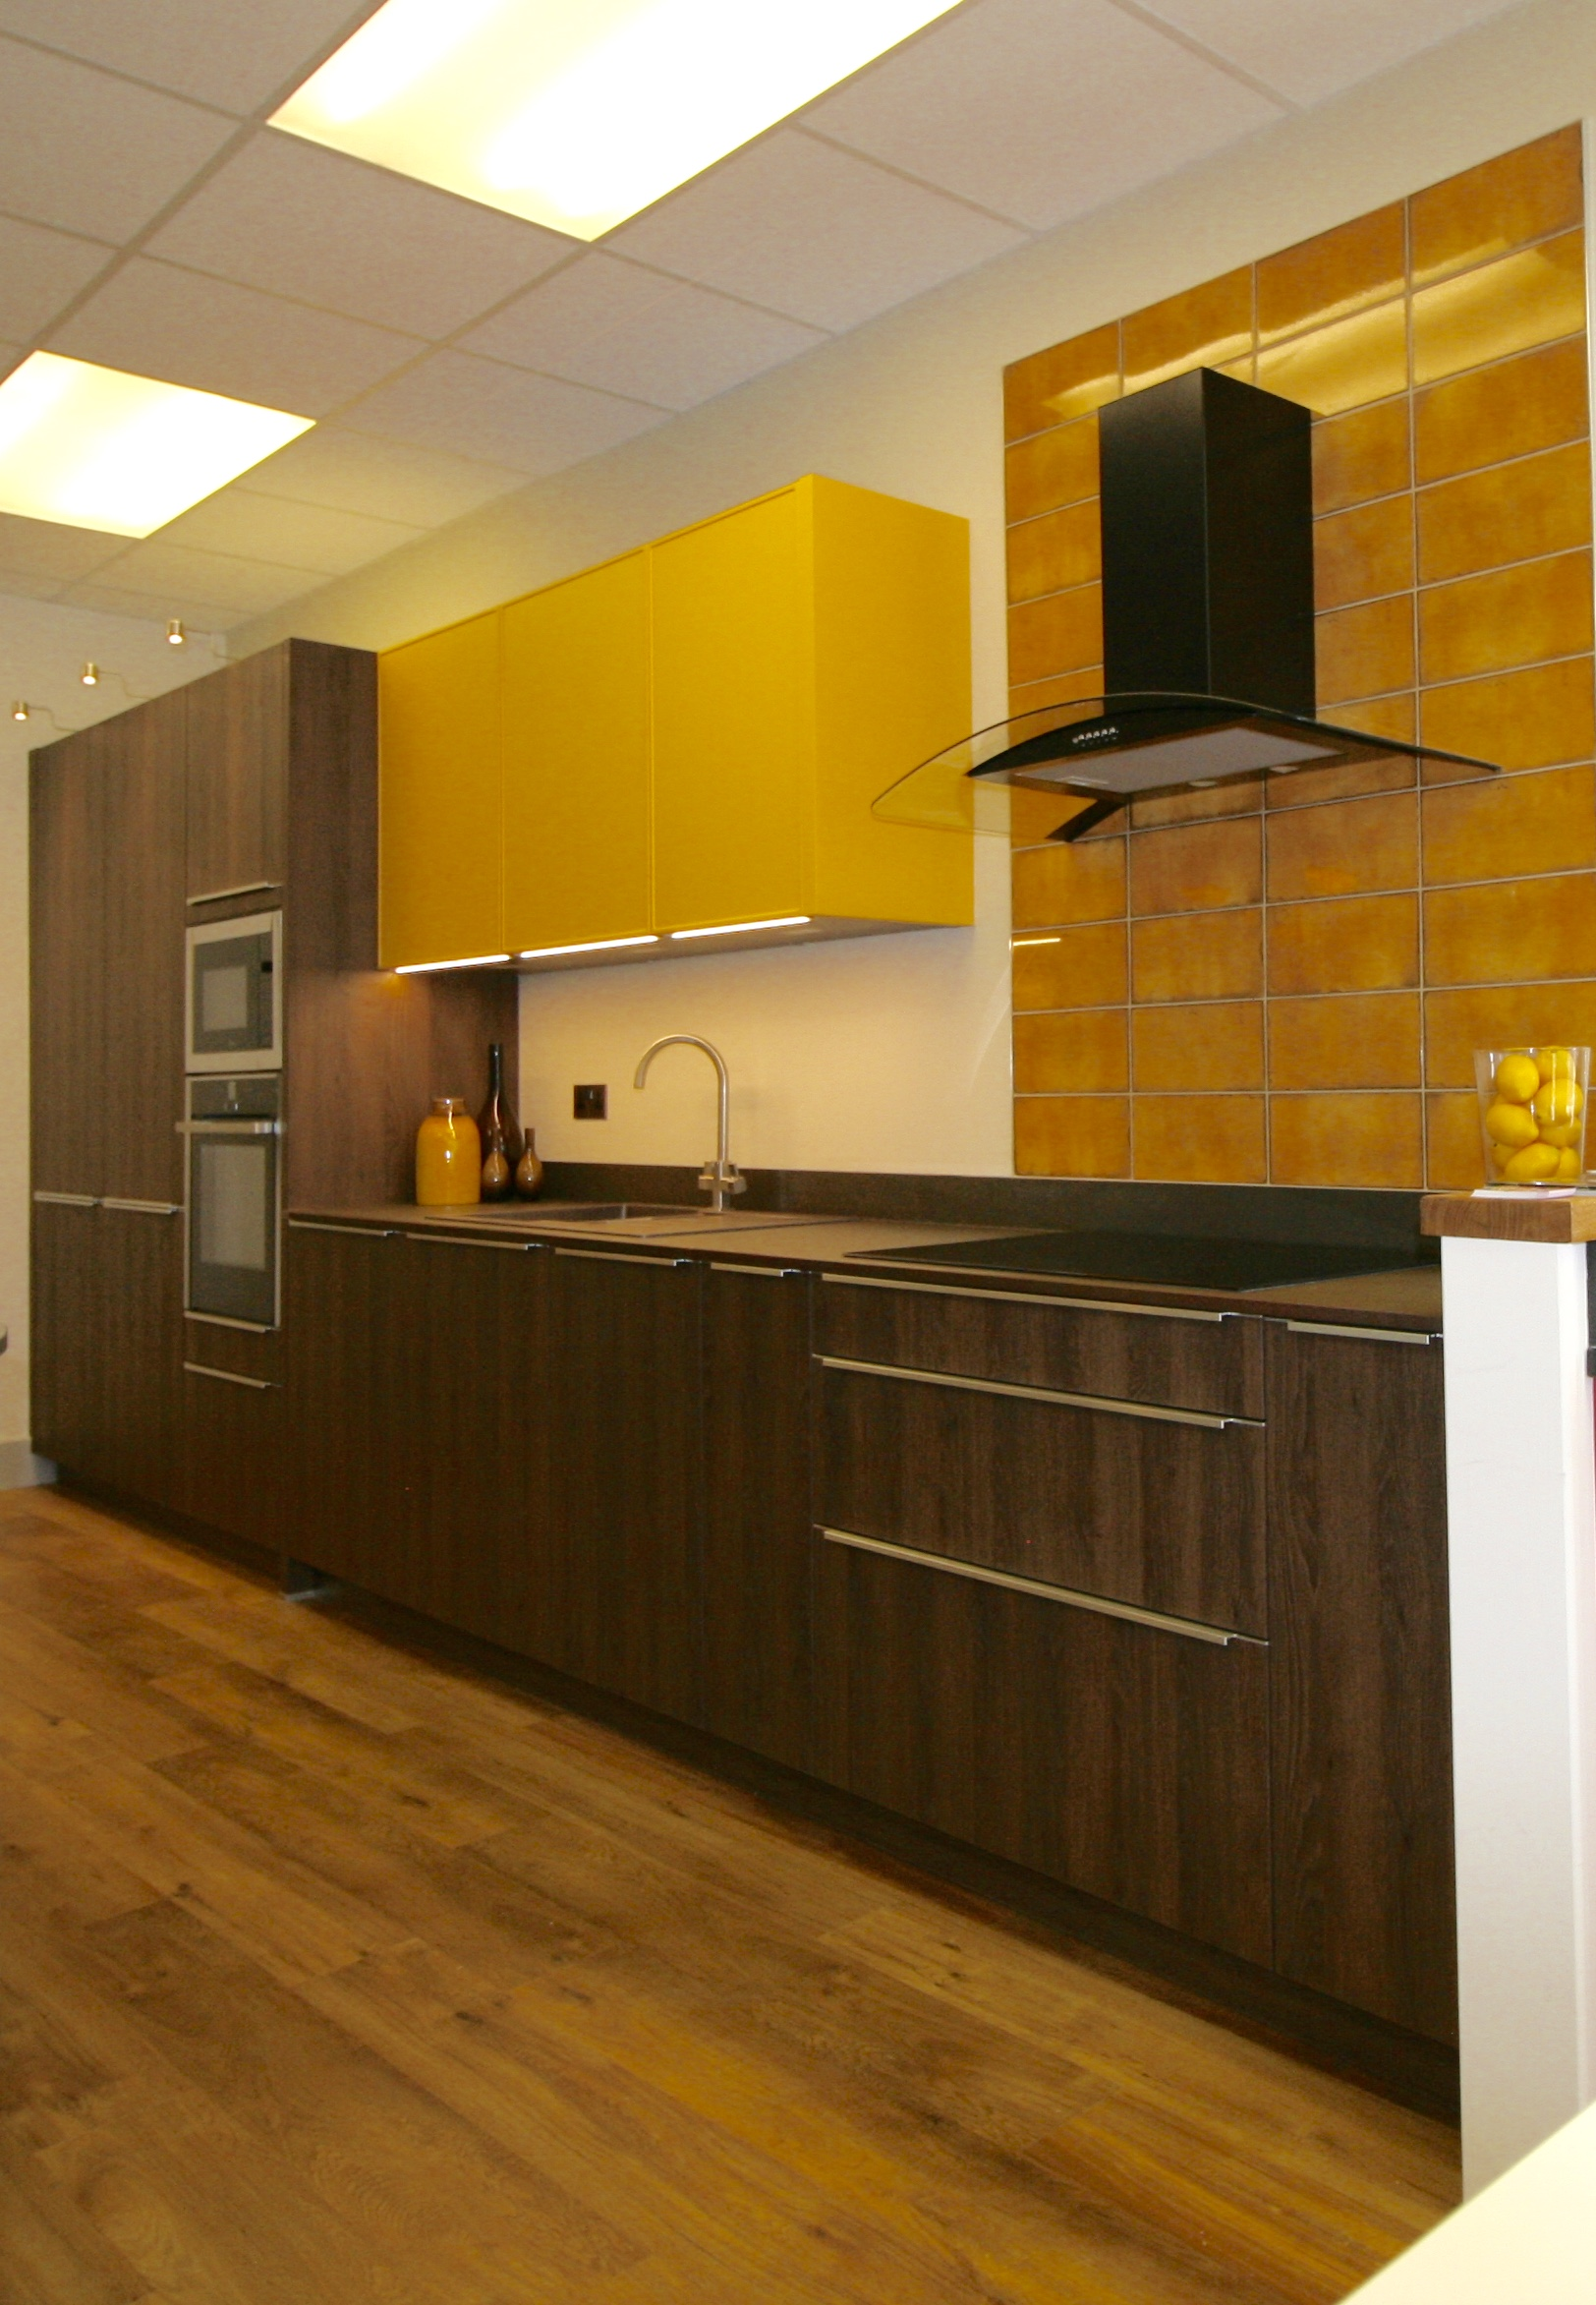 One of eleven beautiful kitchens designed by Amelia Wilson Interiors Ltd for Cockermouth Kitchen Co